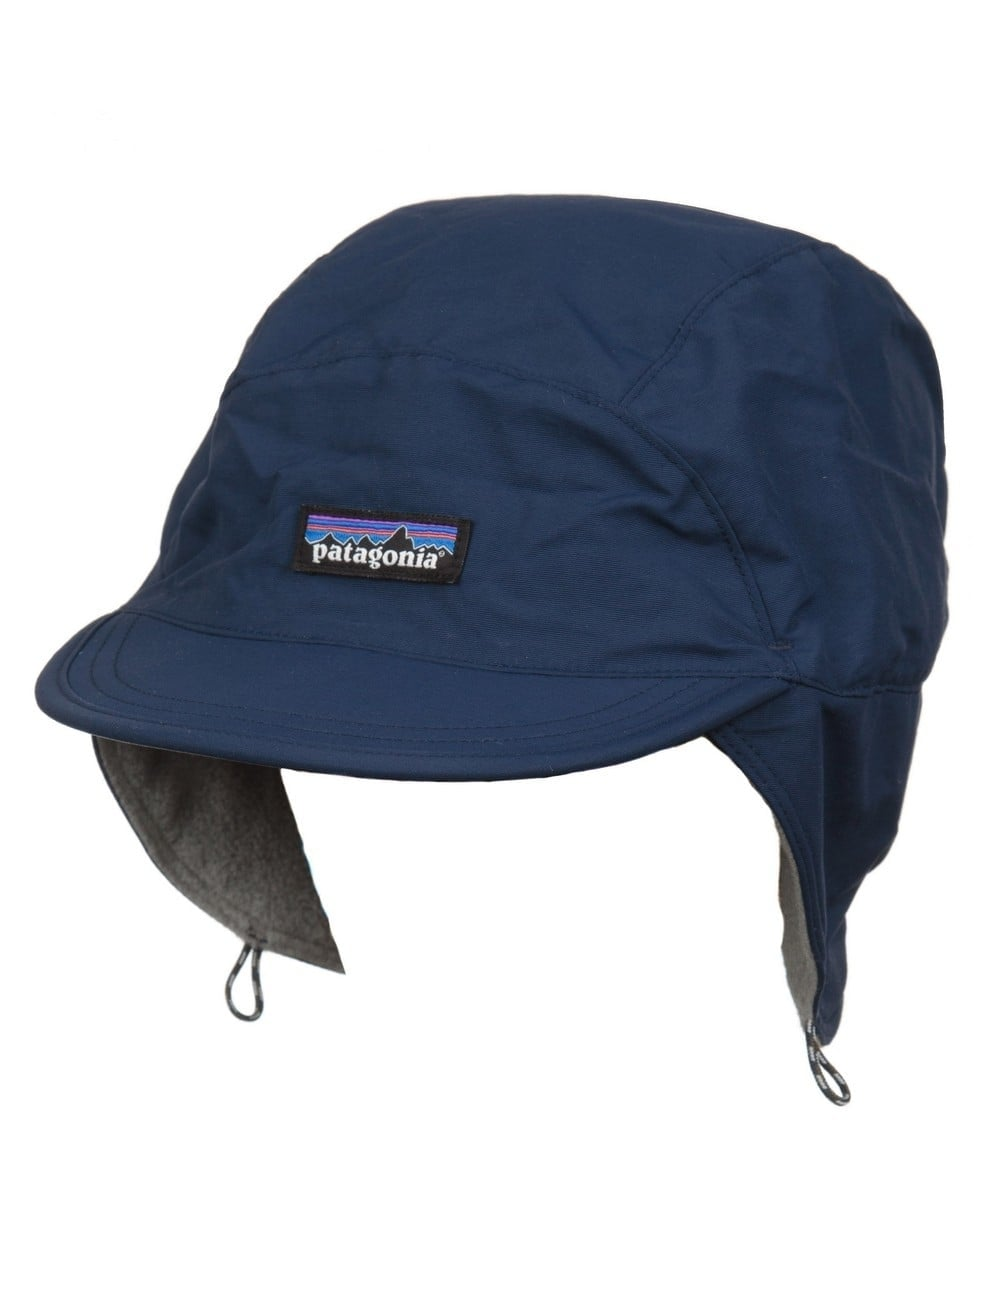 5d3d07b9e257c Patagonia Shelled Synchilla Duckbill Cap - Navy Feather Grey ...